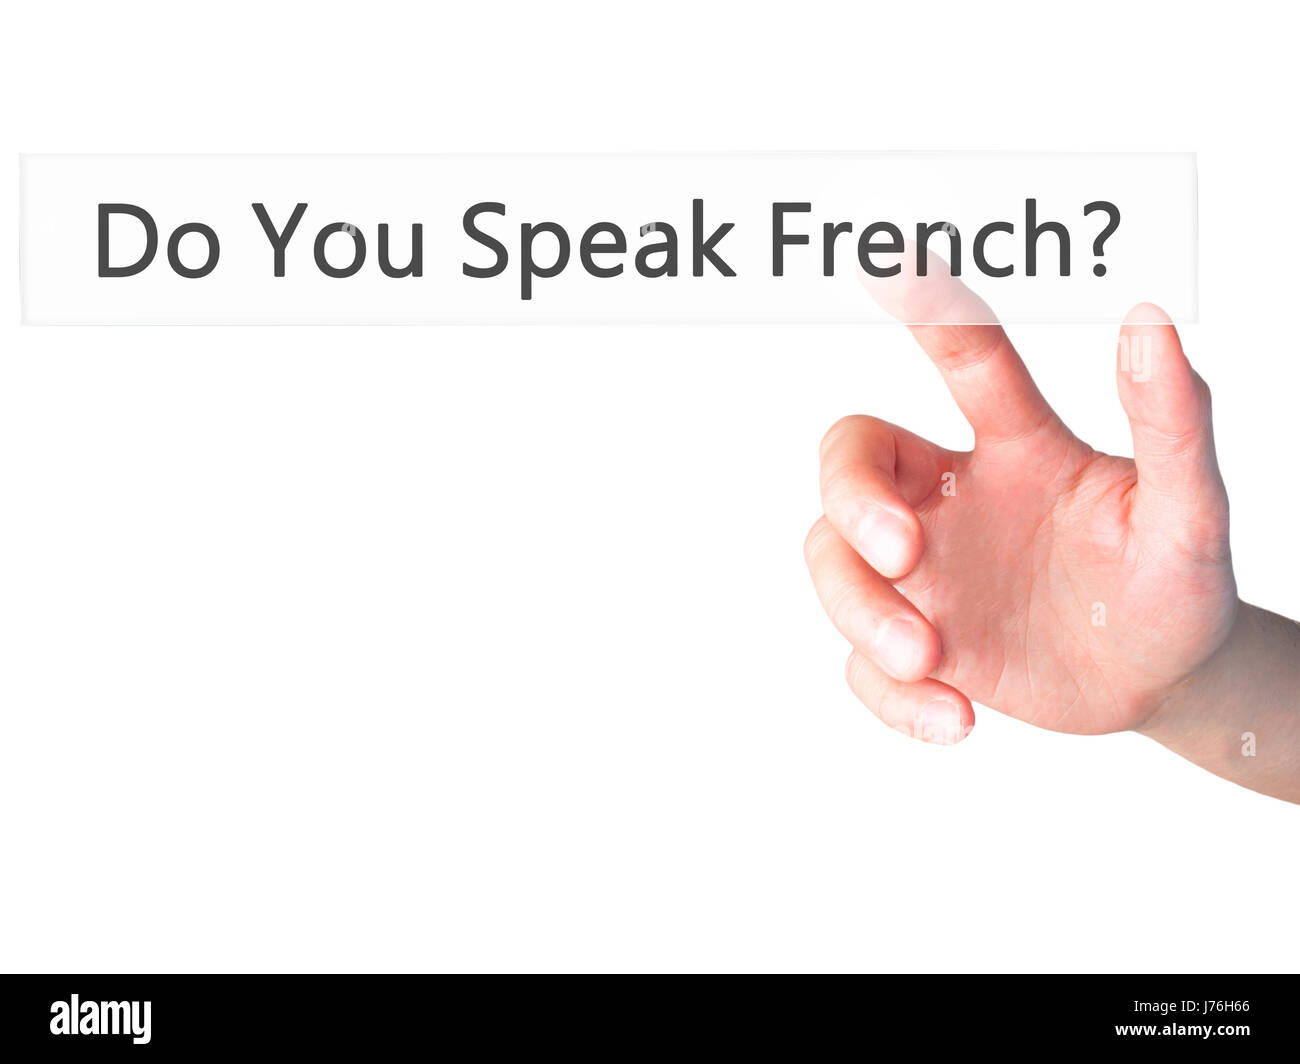 Do You Speak French ? - Hand pressing a button on blurred background concept . Business, technology, internet concept. - Stock Image